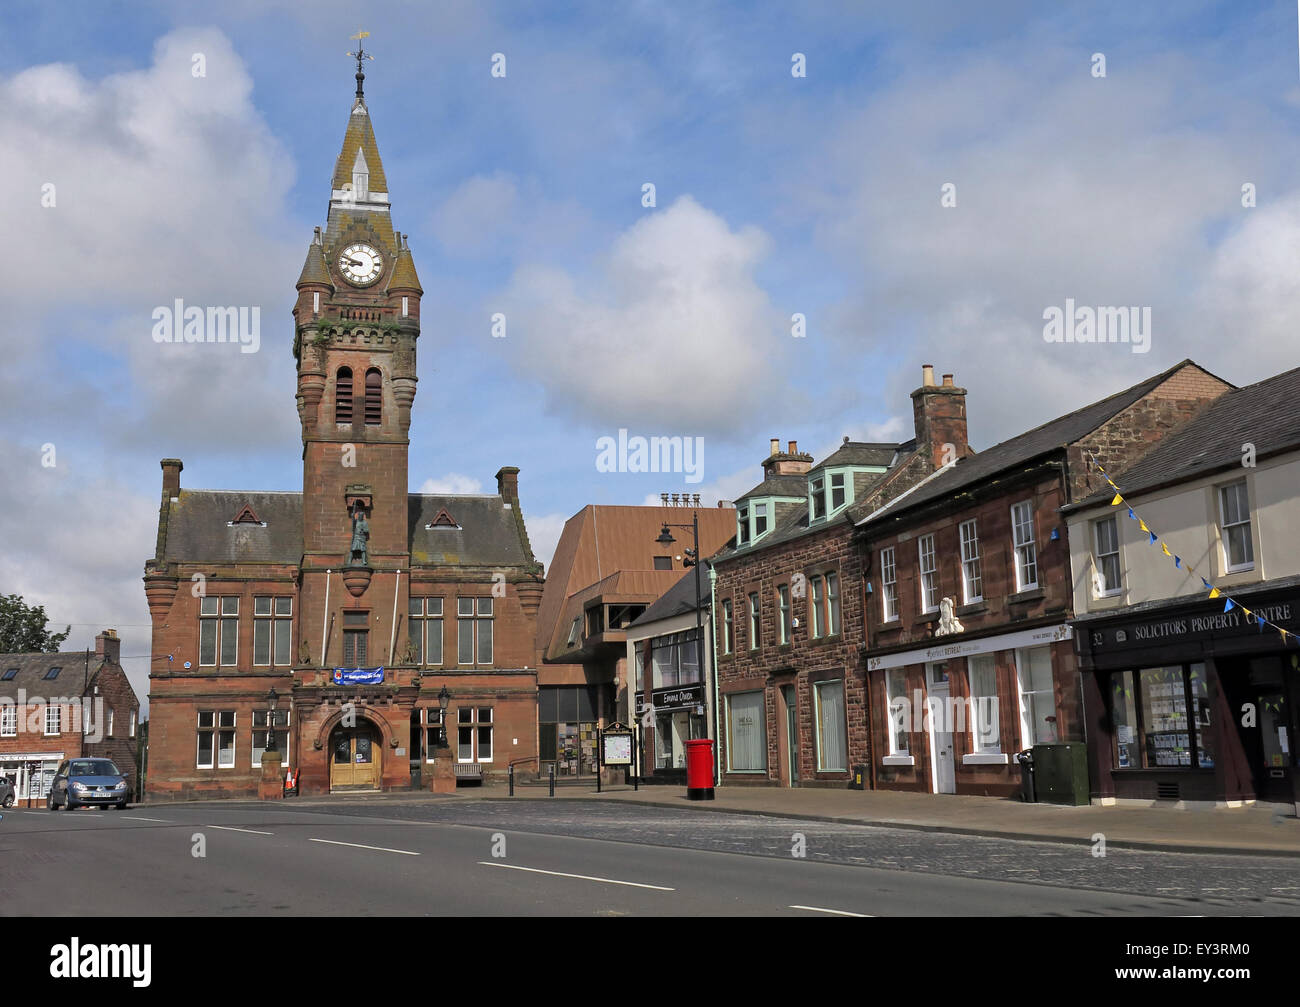 Annan town hall,Annan,Dumfries & Galloway - Municipal buildings,Council,Offices,High,Street,Annan,DG12 6AQ,stone,historic,history,Victorian,royal,burgh,in,south-west,Scotland,sandstone,Dumfries and Galloway,GoTonySmith,Buy Pictures of,Buy Images Of,Scotlands History,Scotlands History